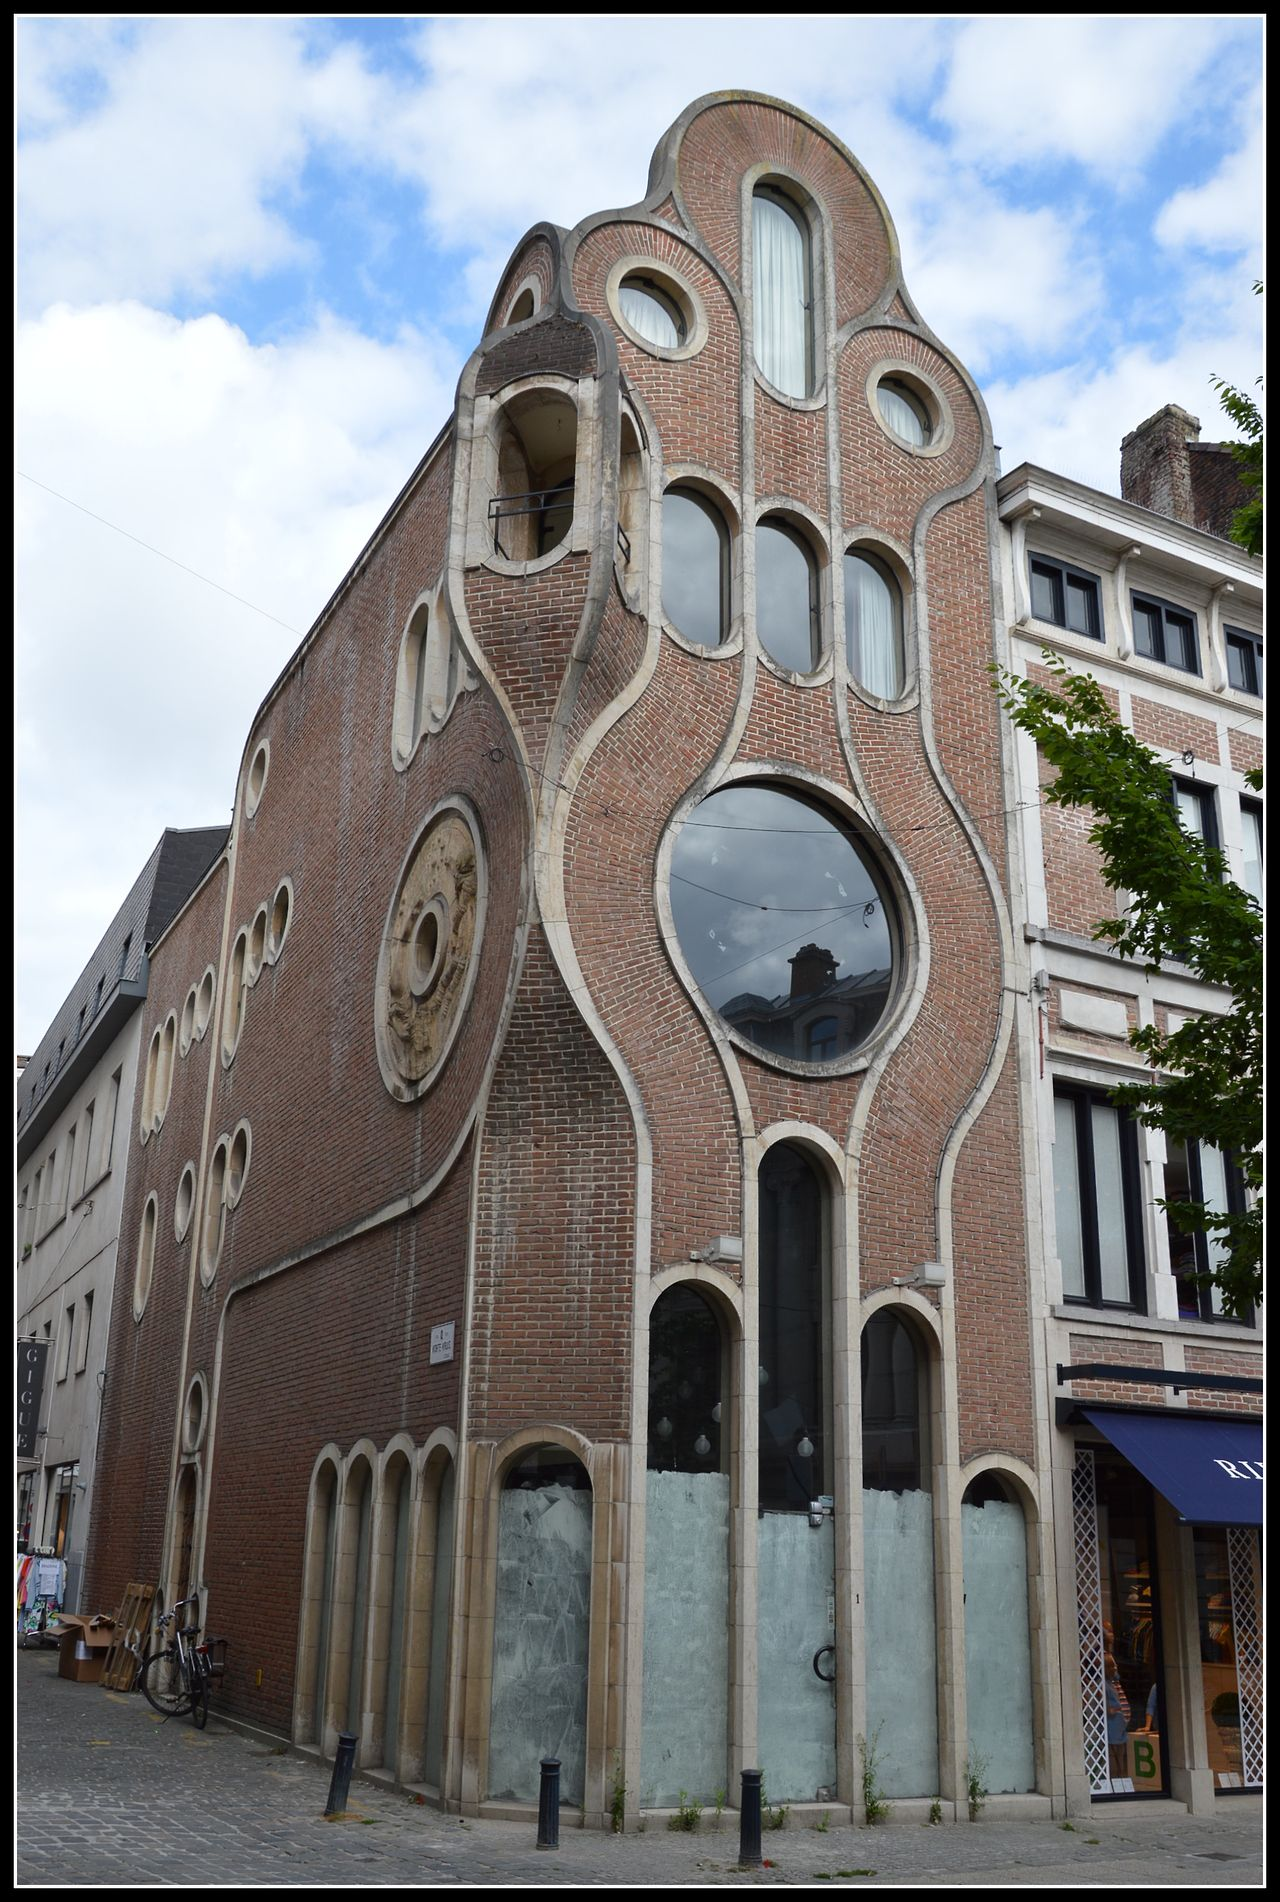 Art Deco Nouveau: This House In Ghent Is Described By Some As Nouveau, By